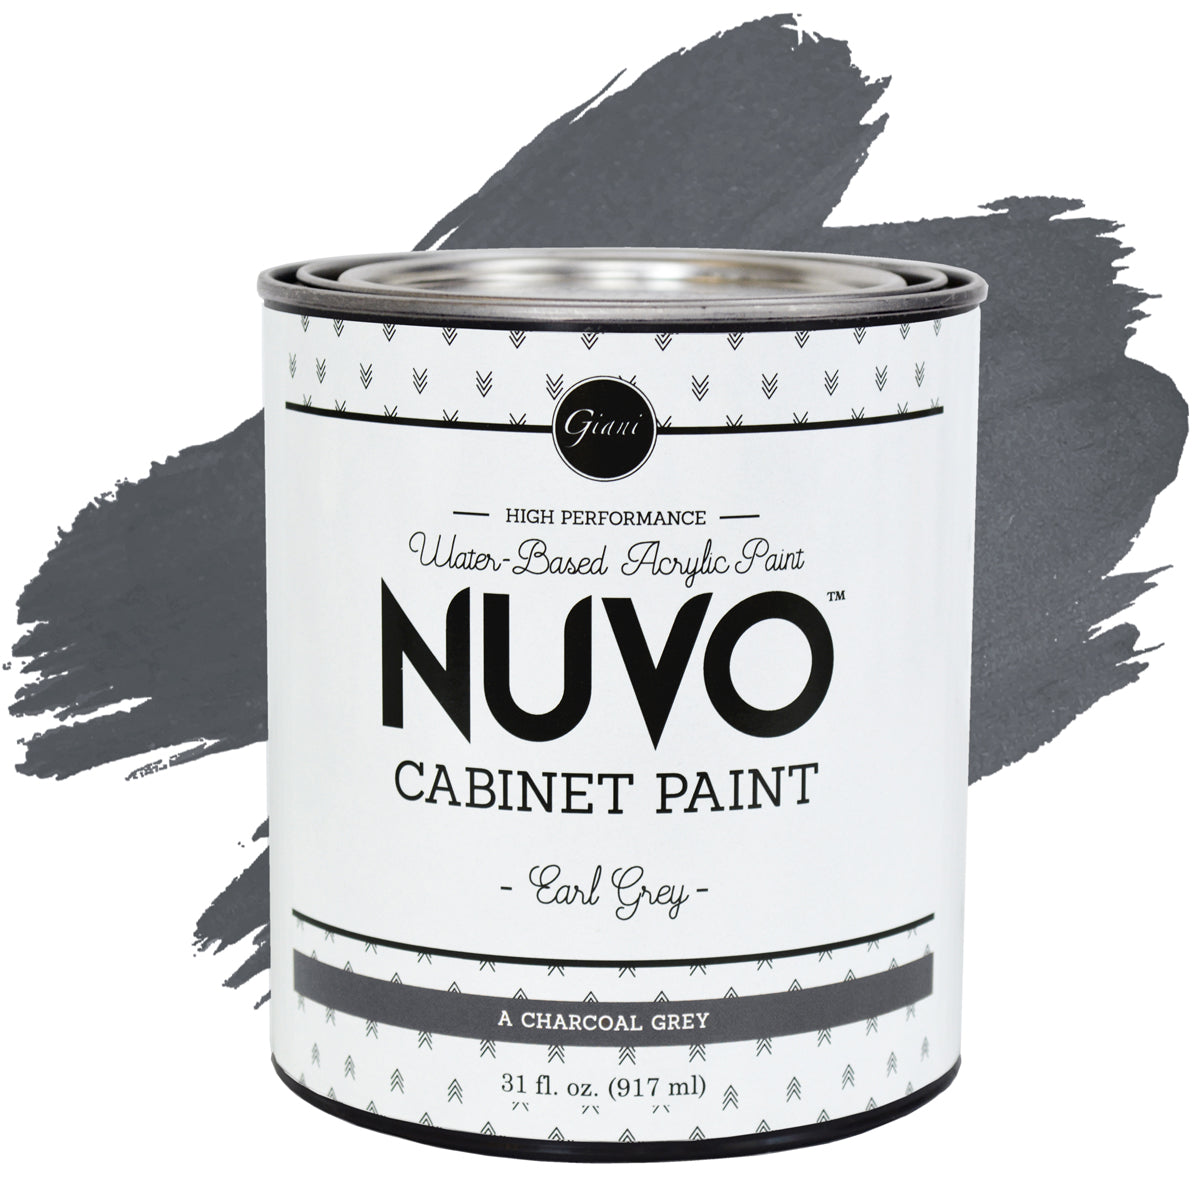 Nuvo earl grey cabinet paint giani inc for Grey cabinet paint